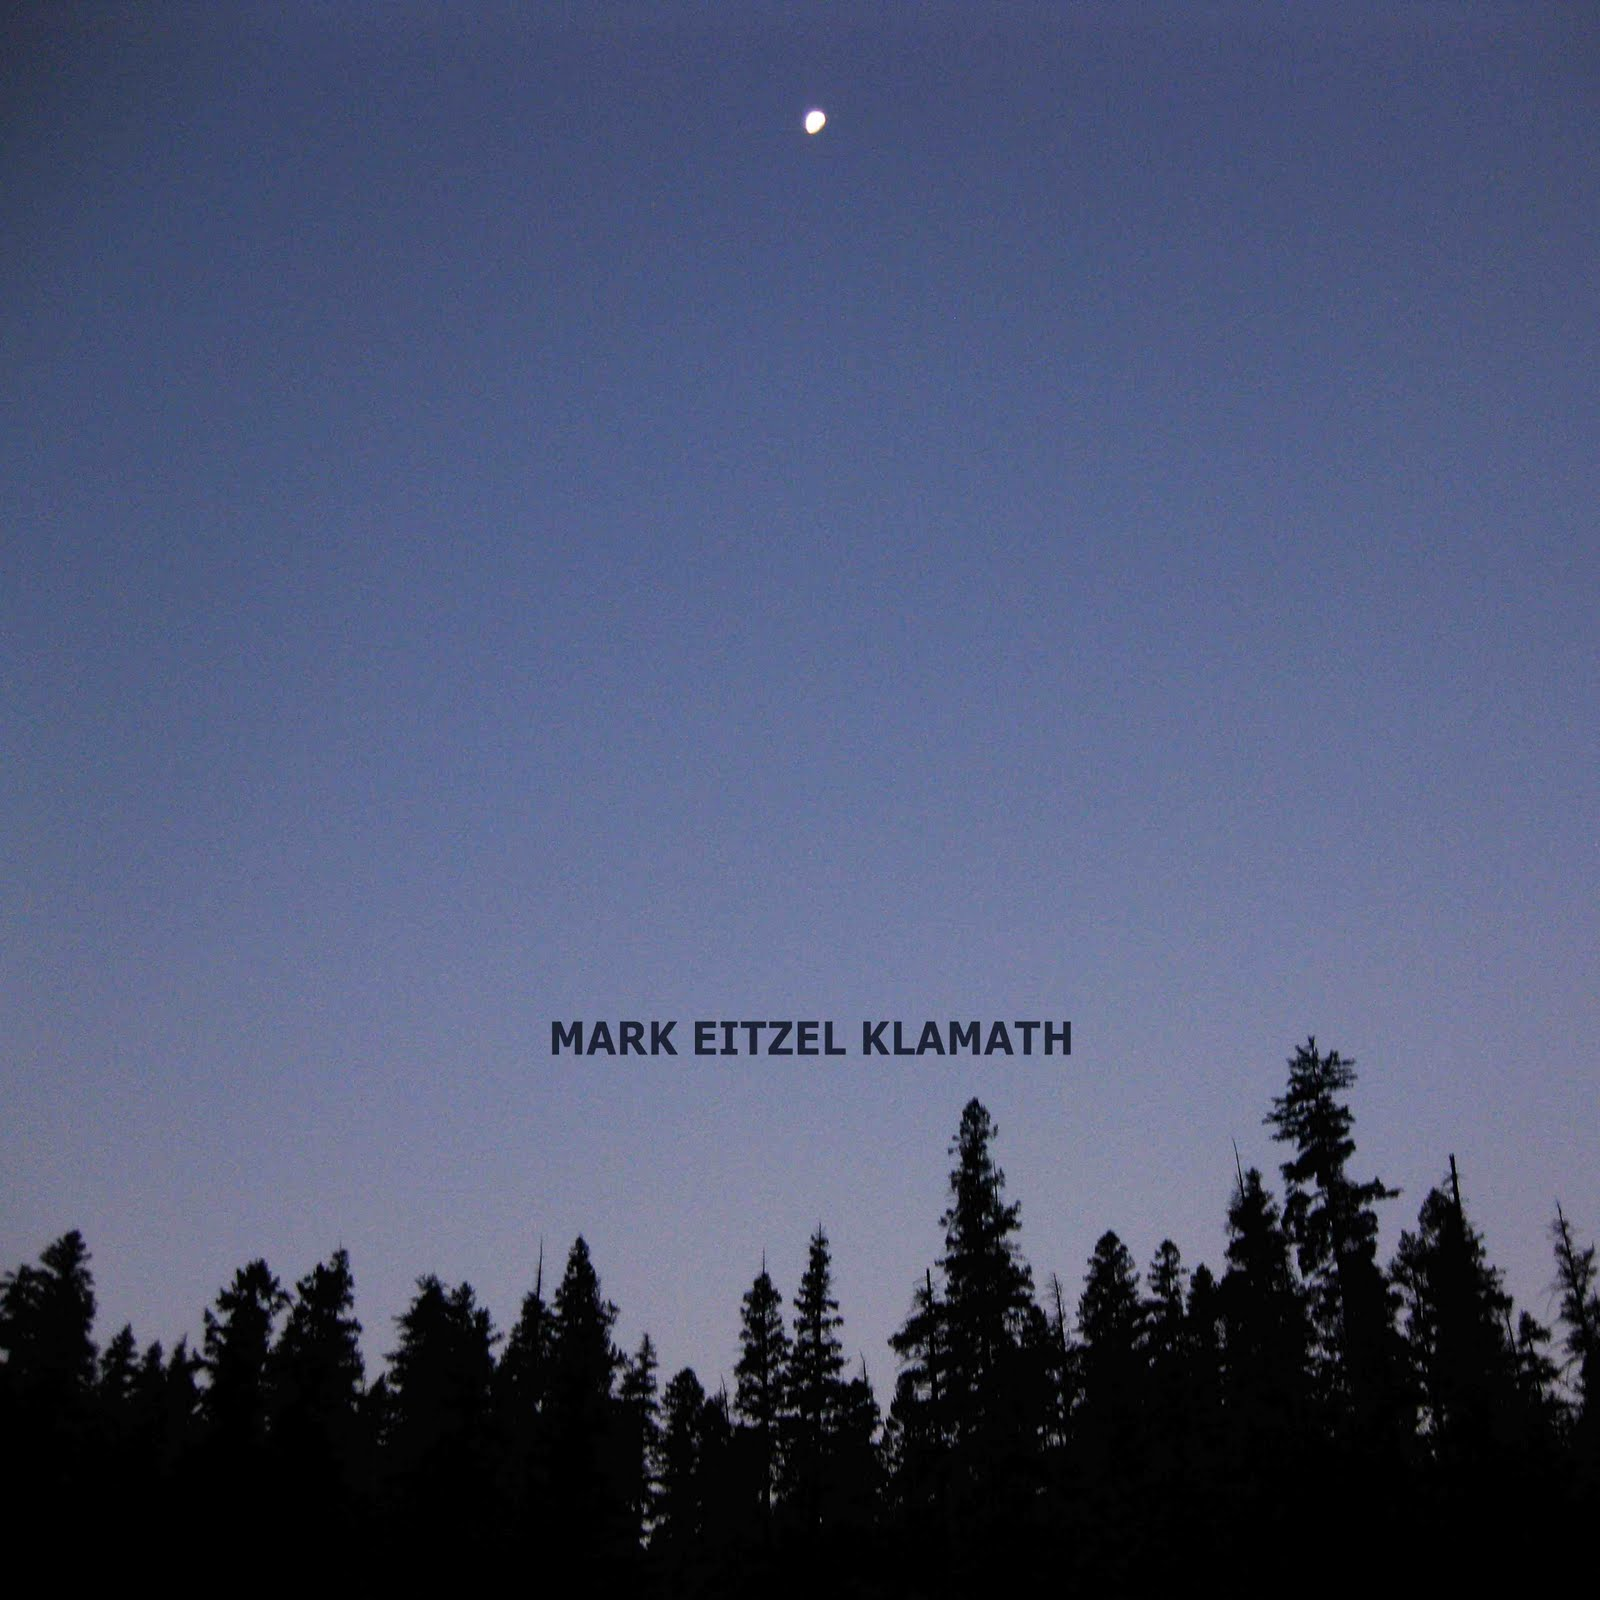 klamath_mark_eitzel